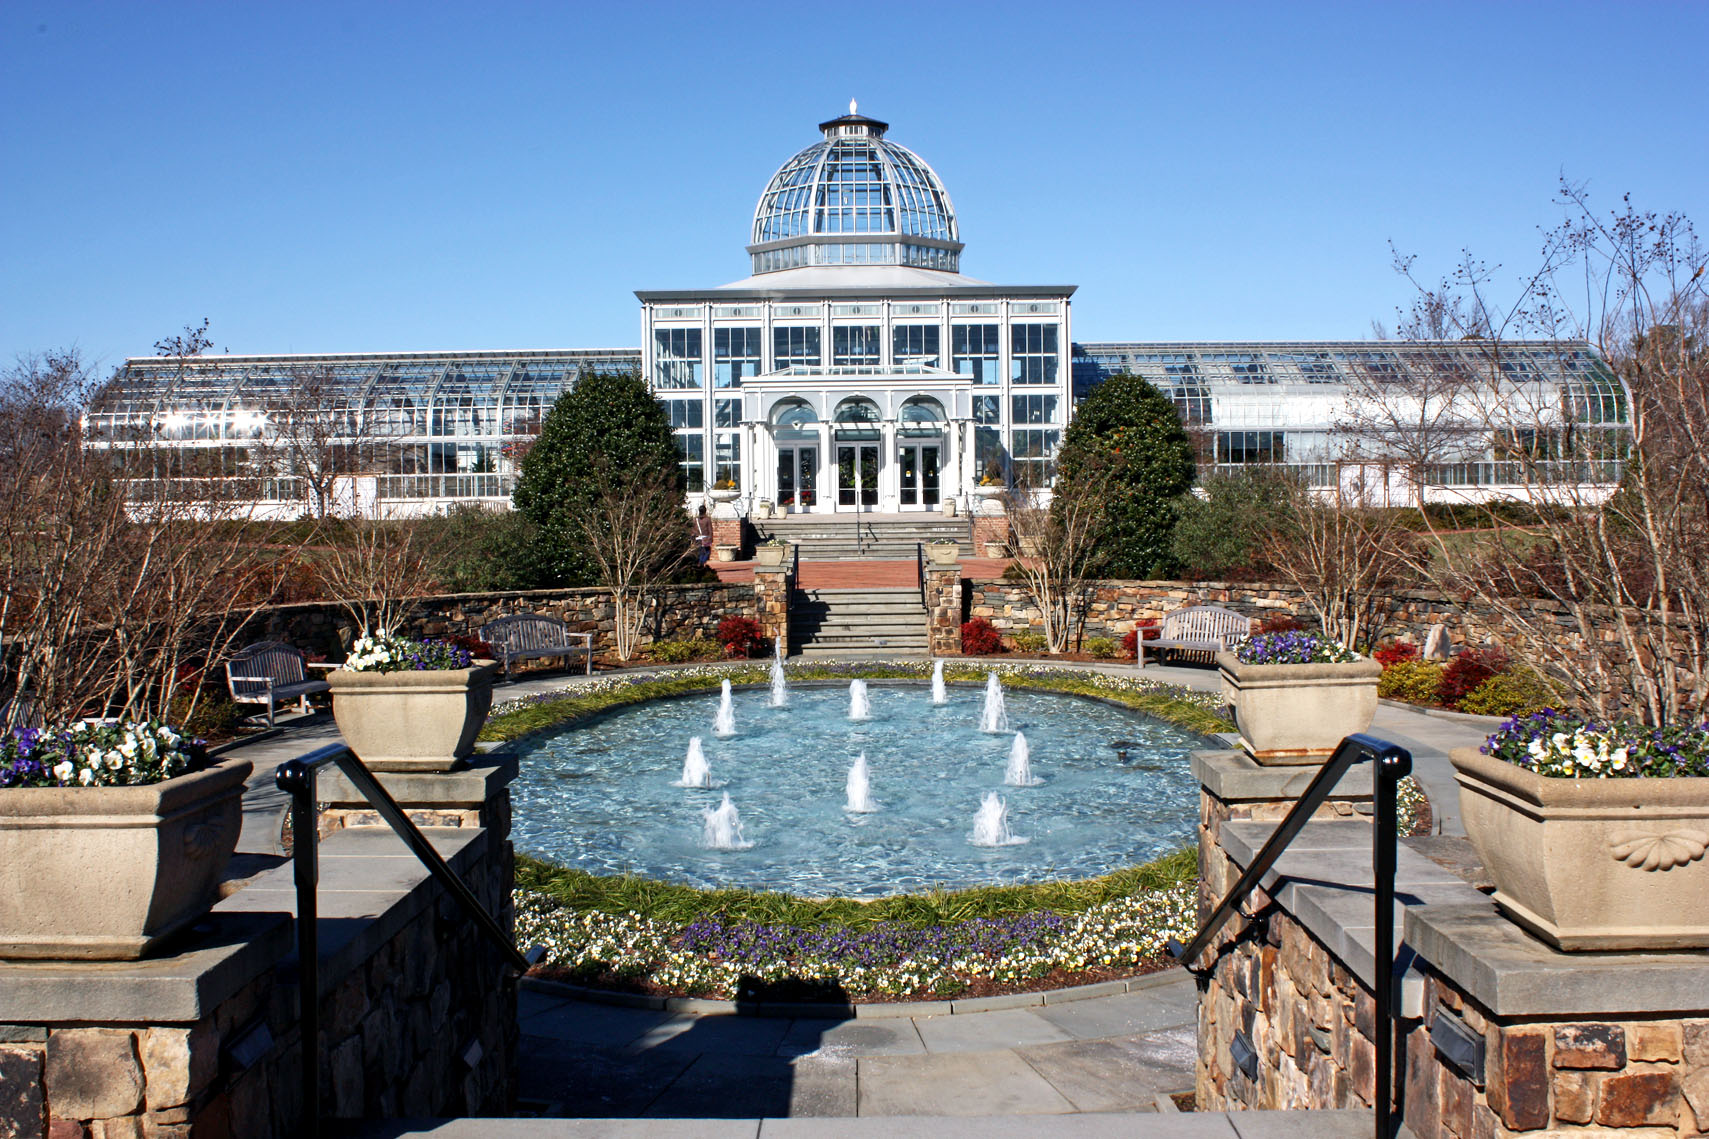 2013_01_20_2099cs copy - Lewis Ginter Botanical Garden